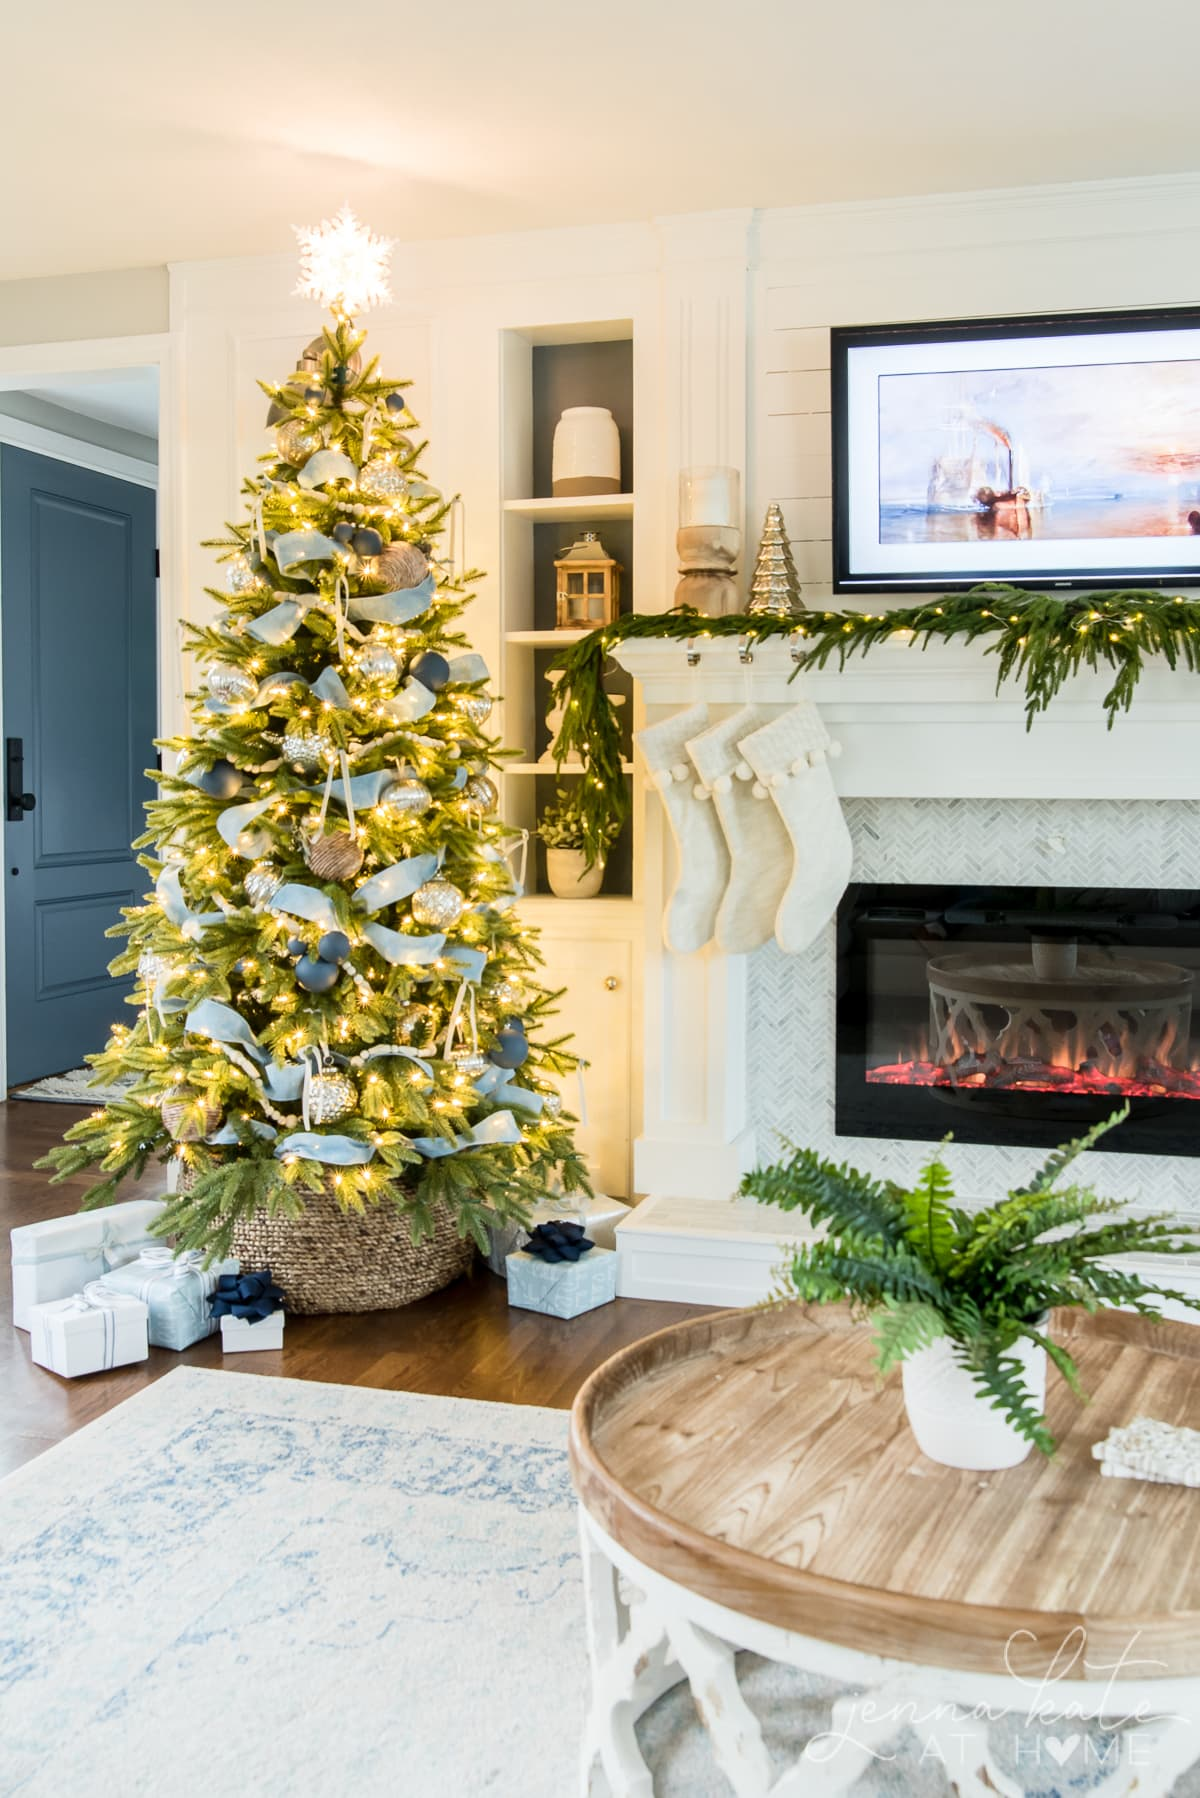 Christmas tree with different shades of blue and silver decor